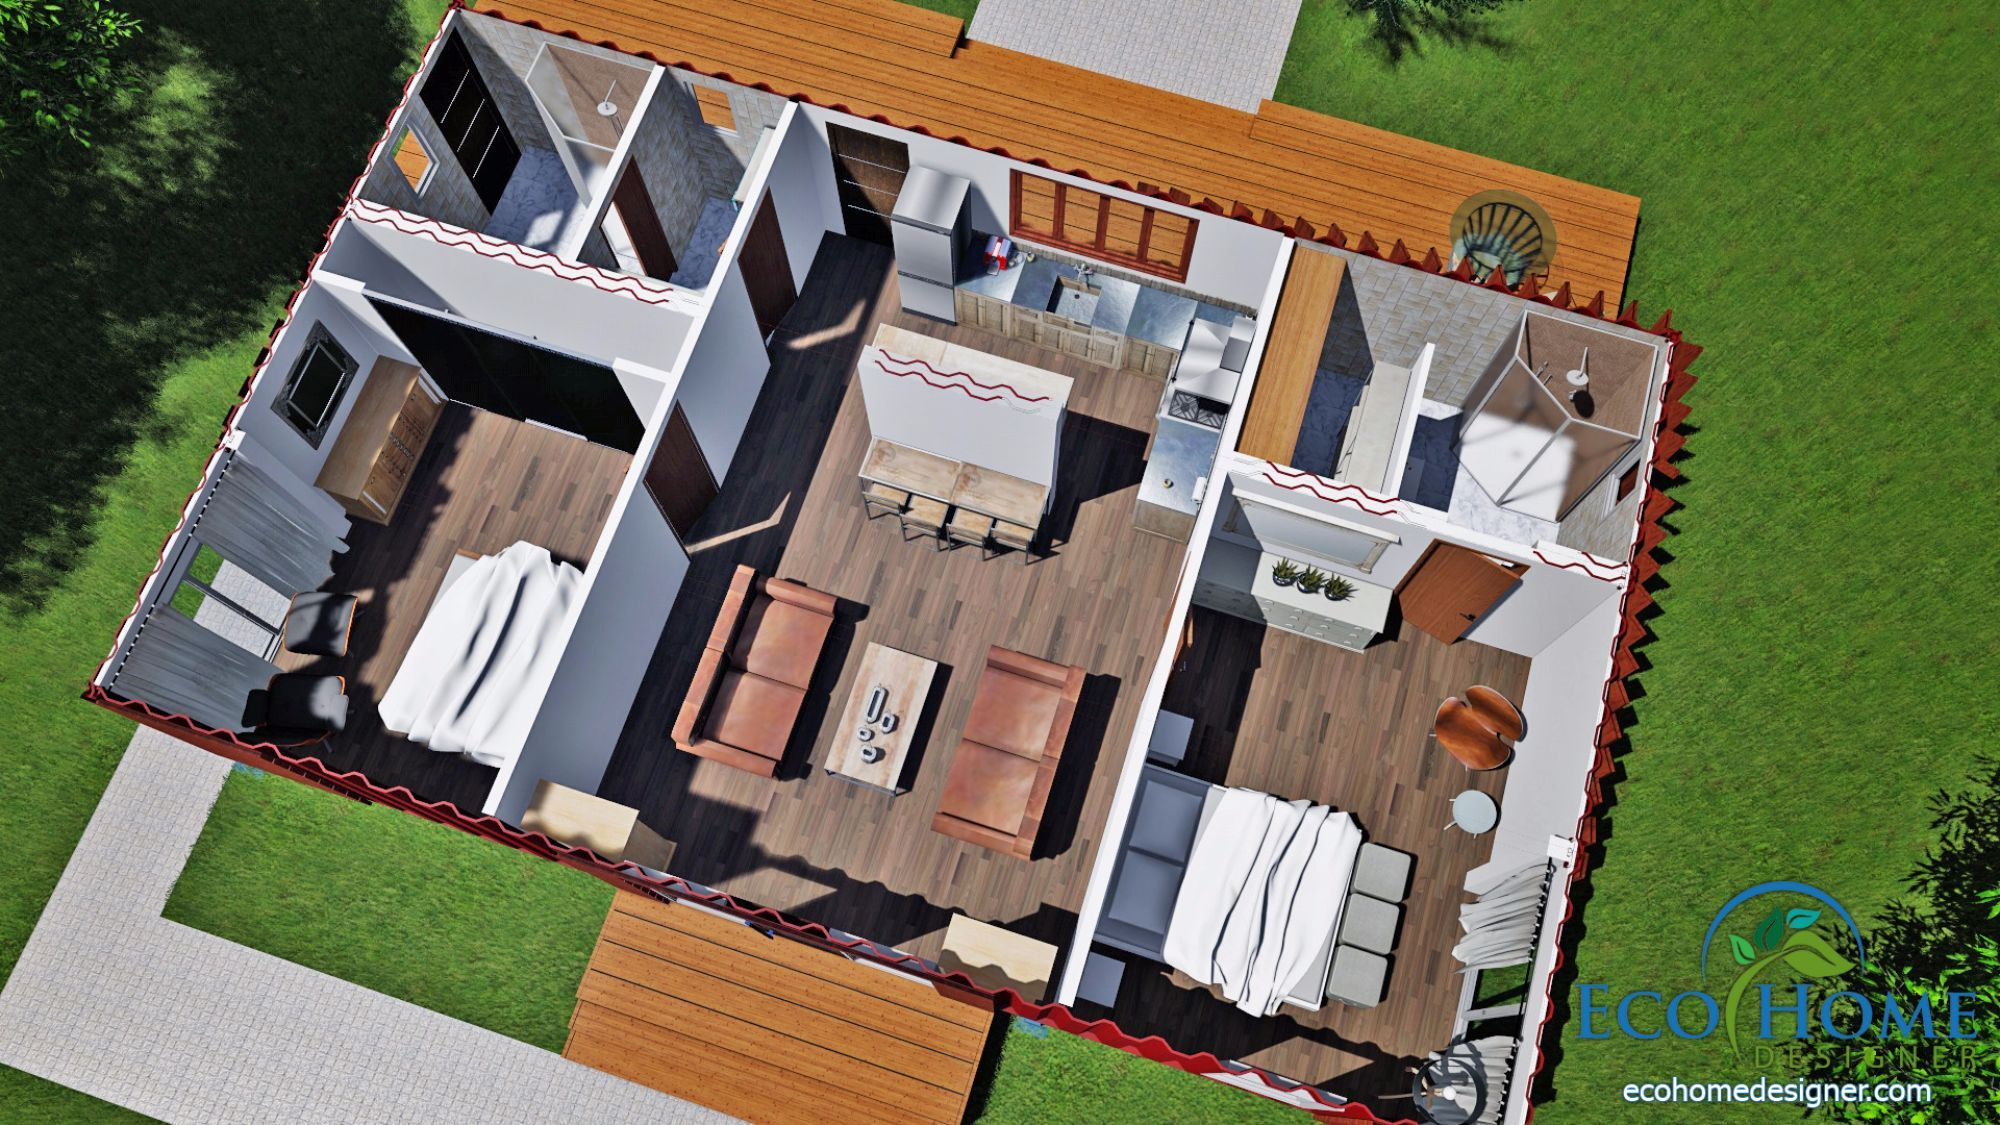 Sch11 3 x 40ft 2 bedroom container home plans container - 40ft shipping container home ...